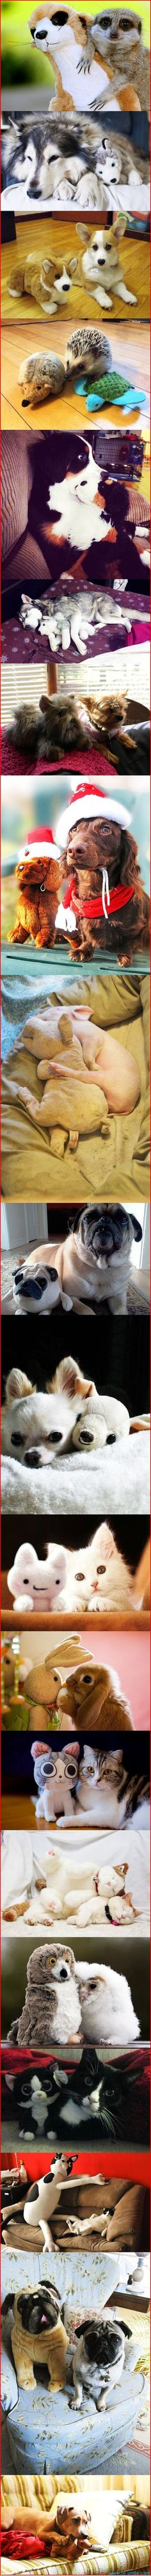 Pets with there stuffed look a like animal